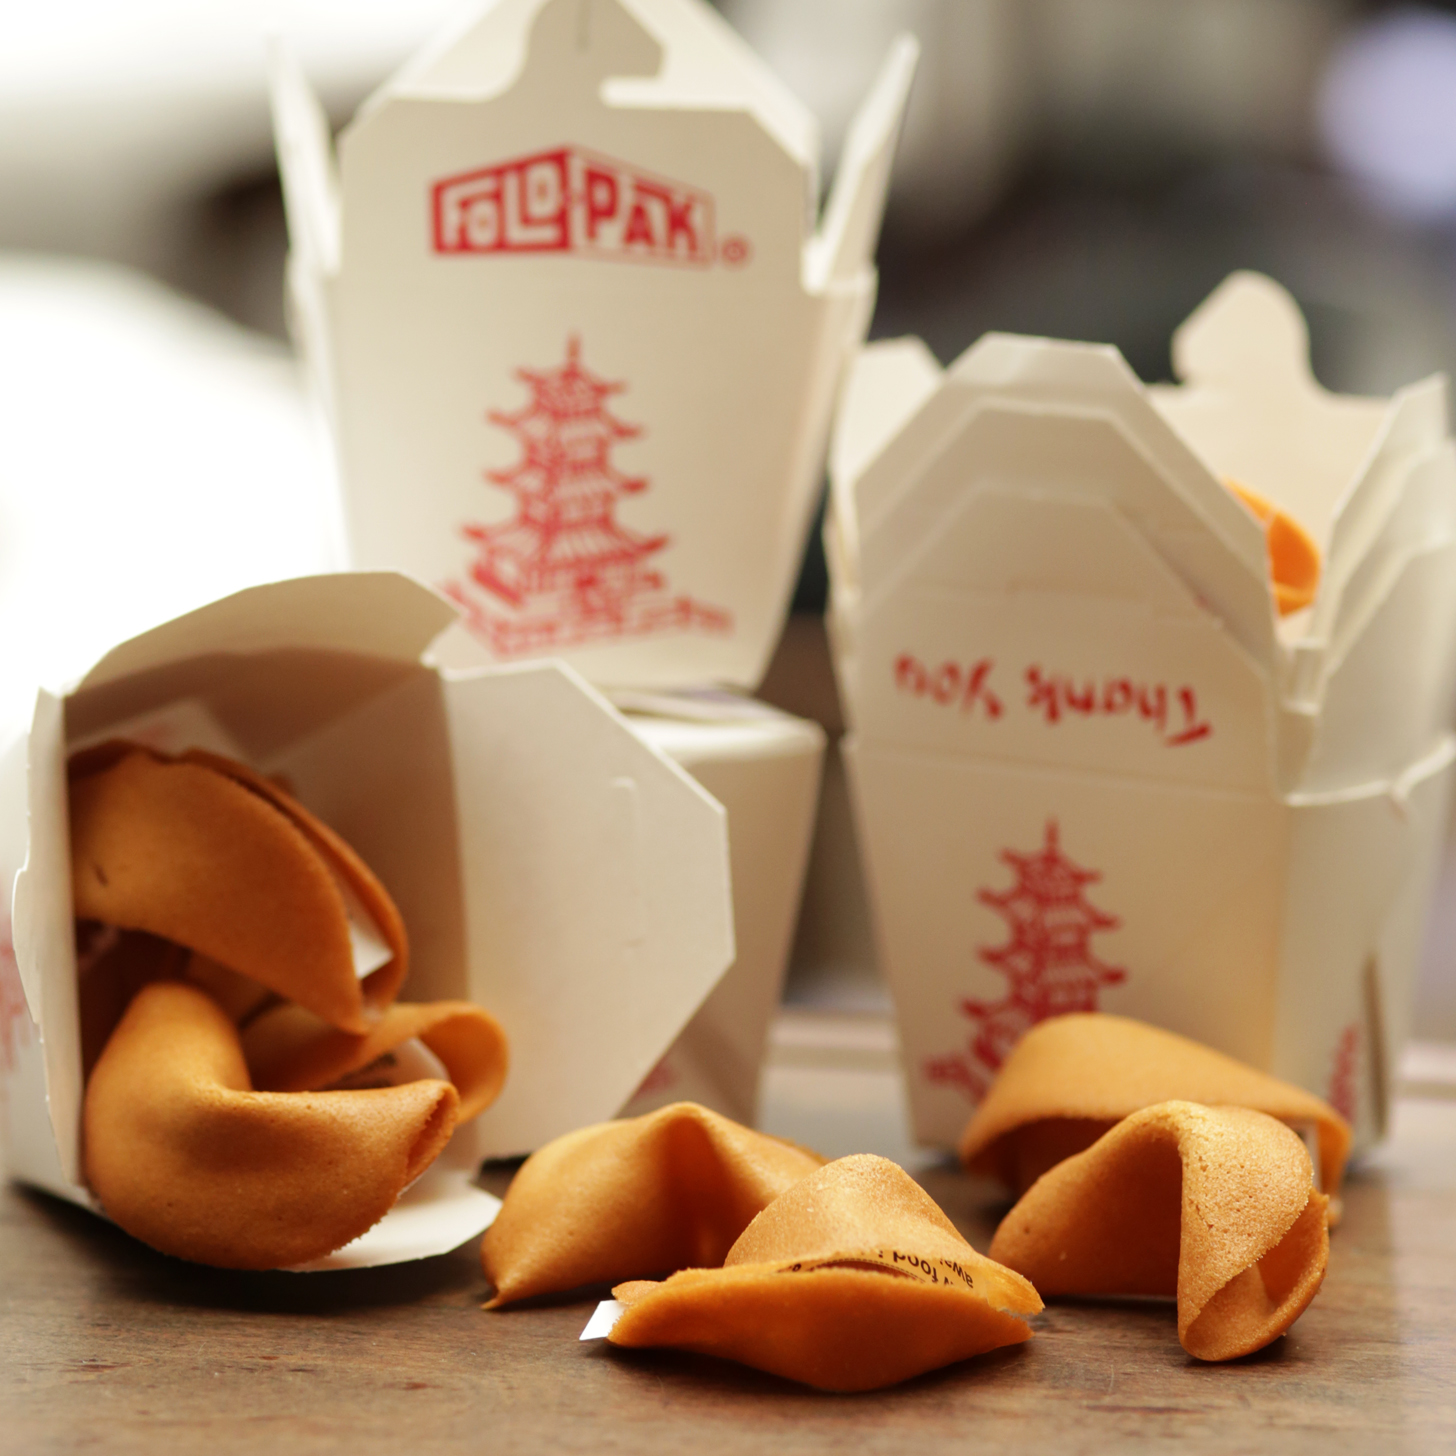 Asian fortune cookie wholesaler